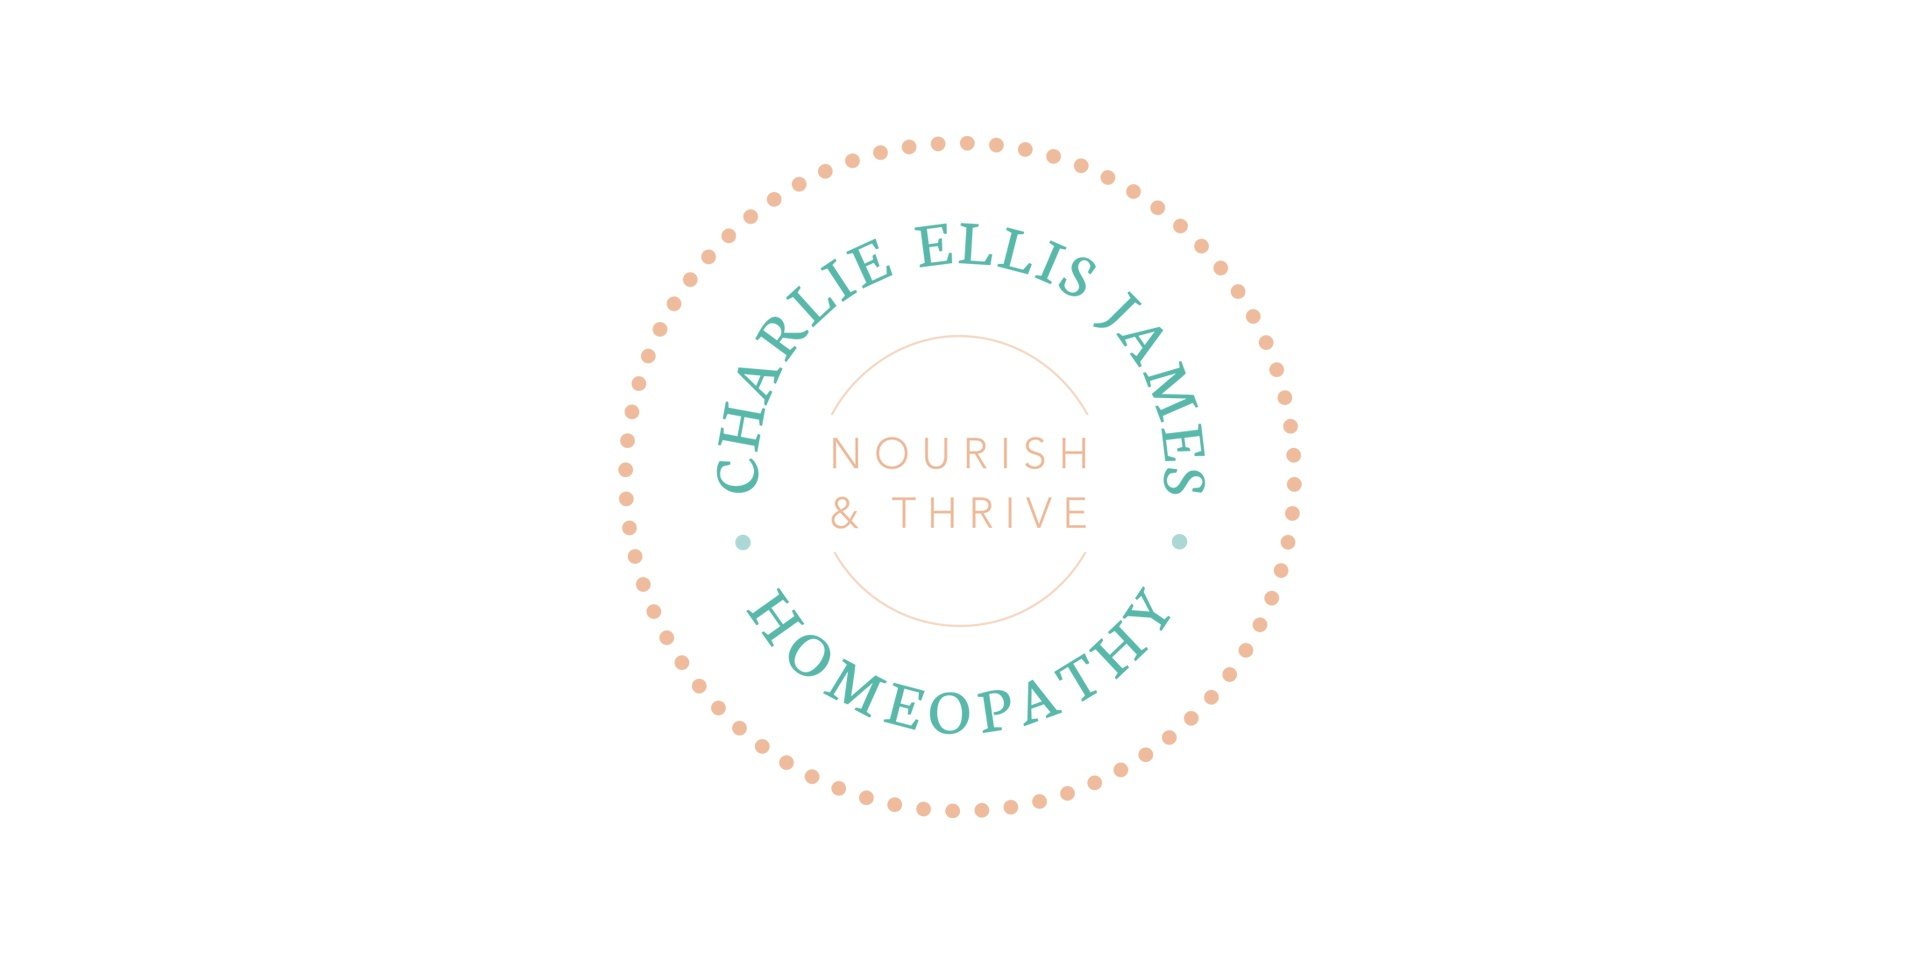 Charlie Ellis James – Homeopath